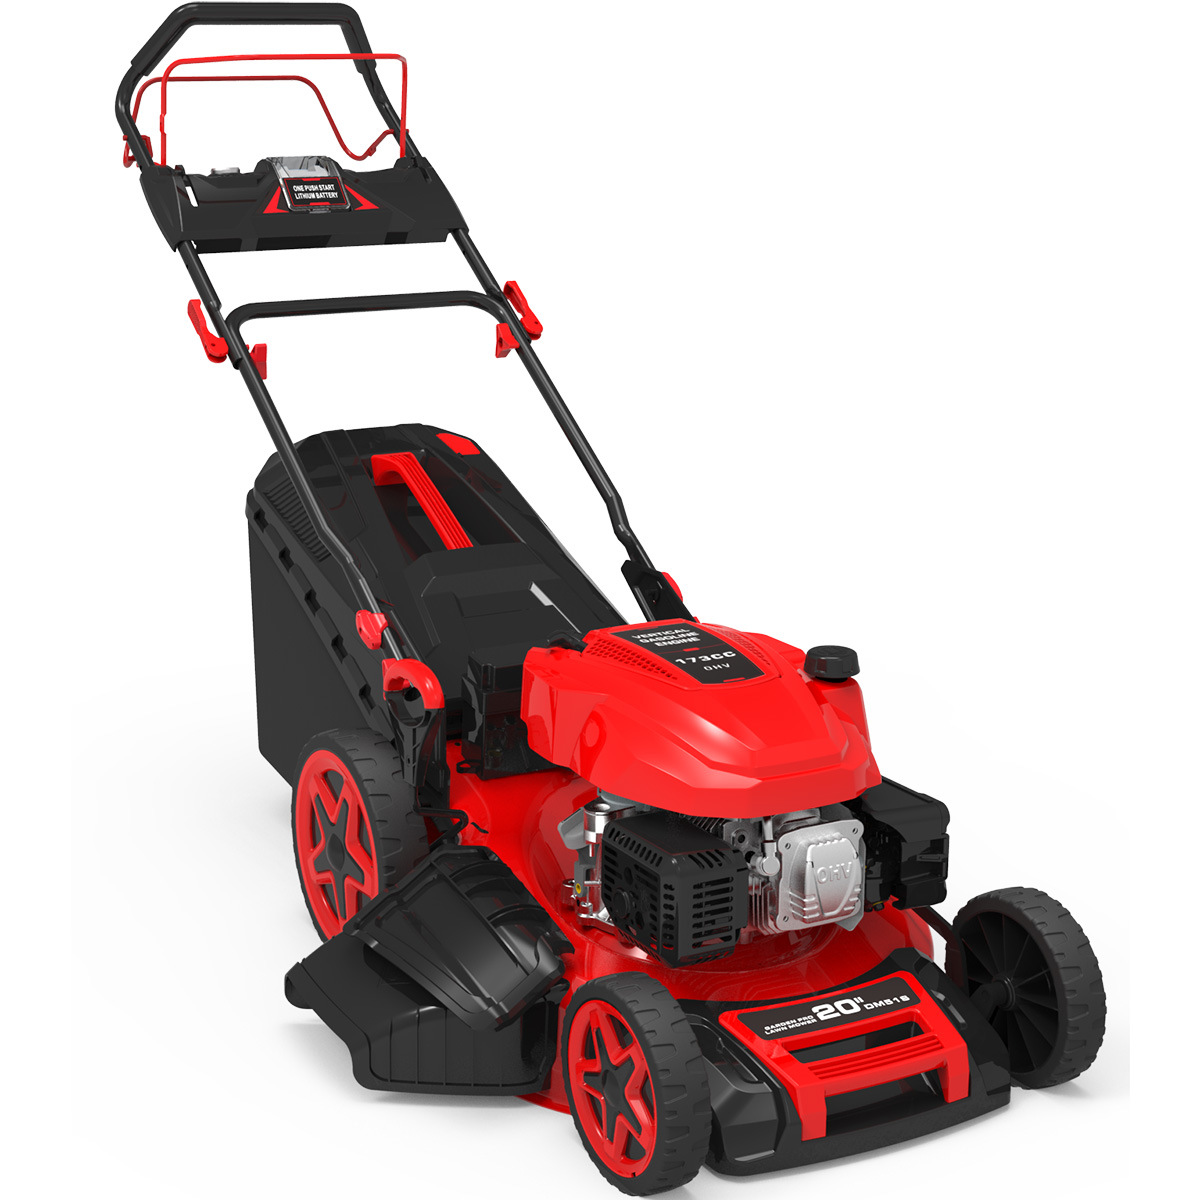 196cc Professional Electric Start Self-Propelled Lawn Mower